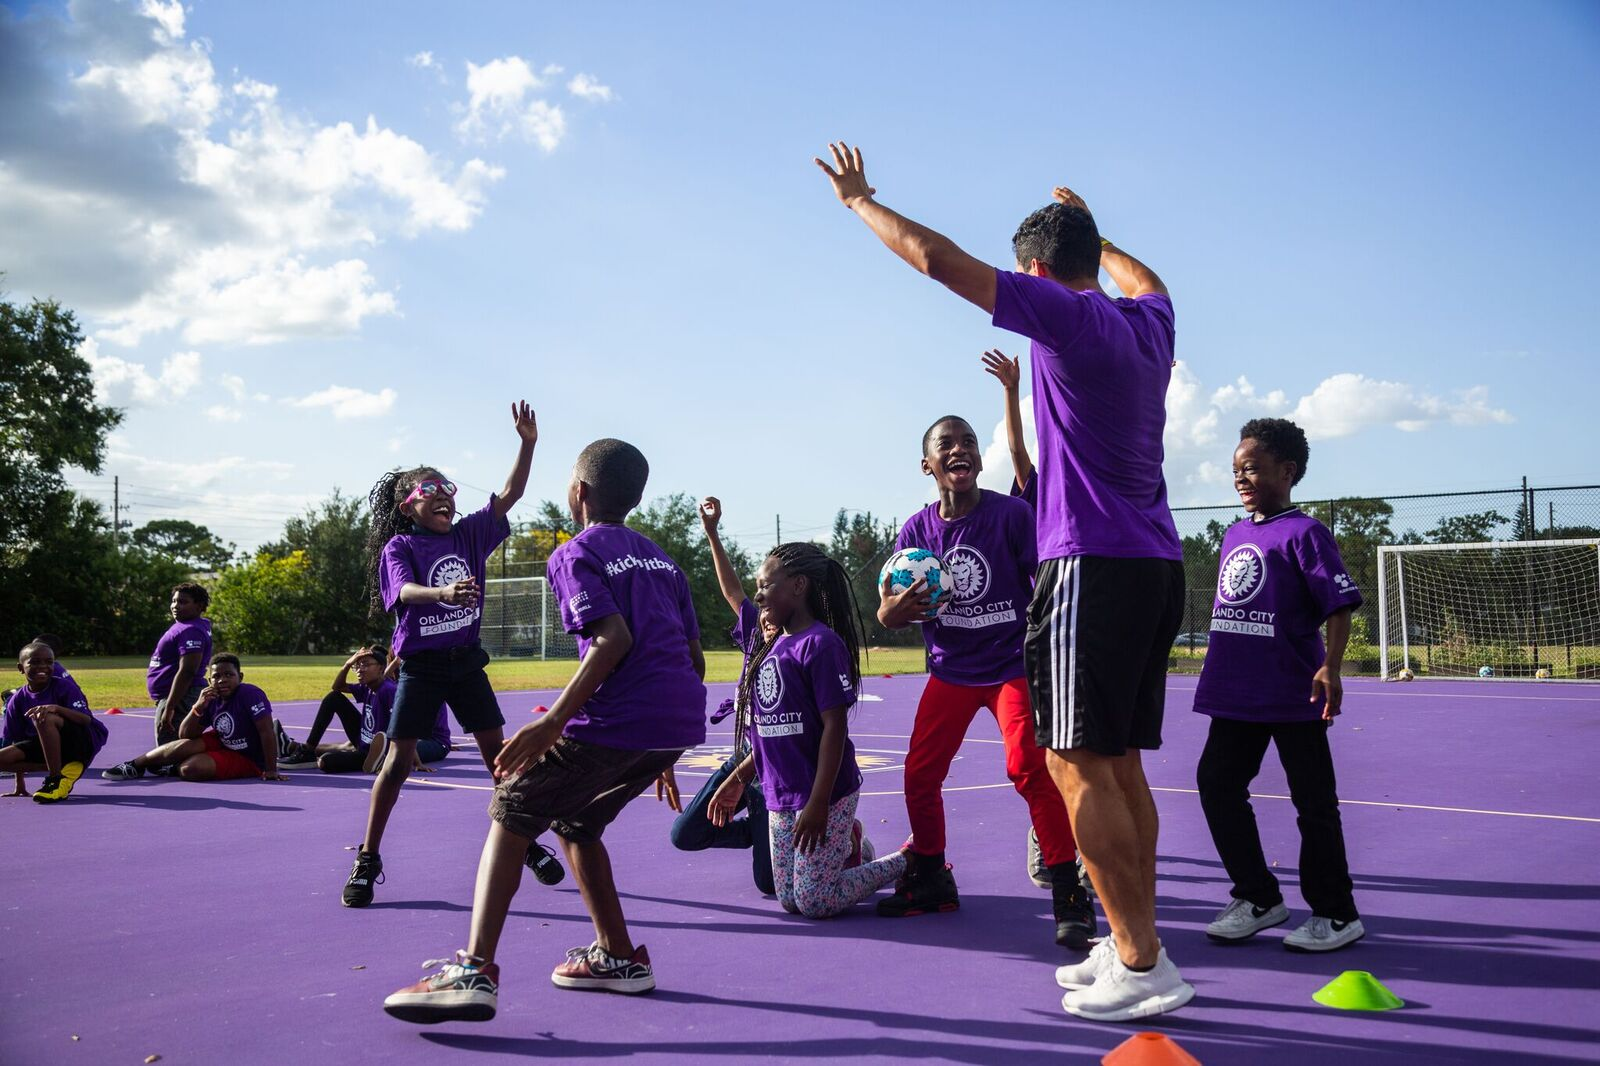 Kicking It Back To The Community  The Orlando City Foundation provides free soccer programing in Central Florida.   Learn More